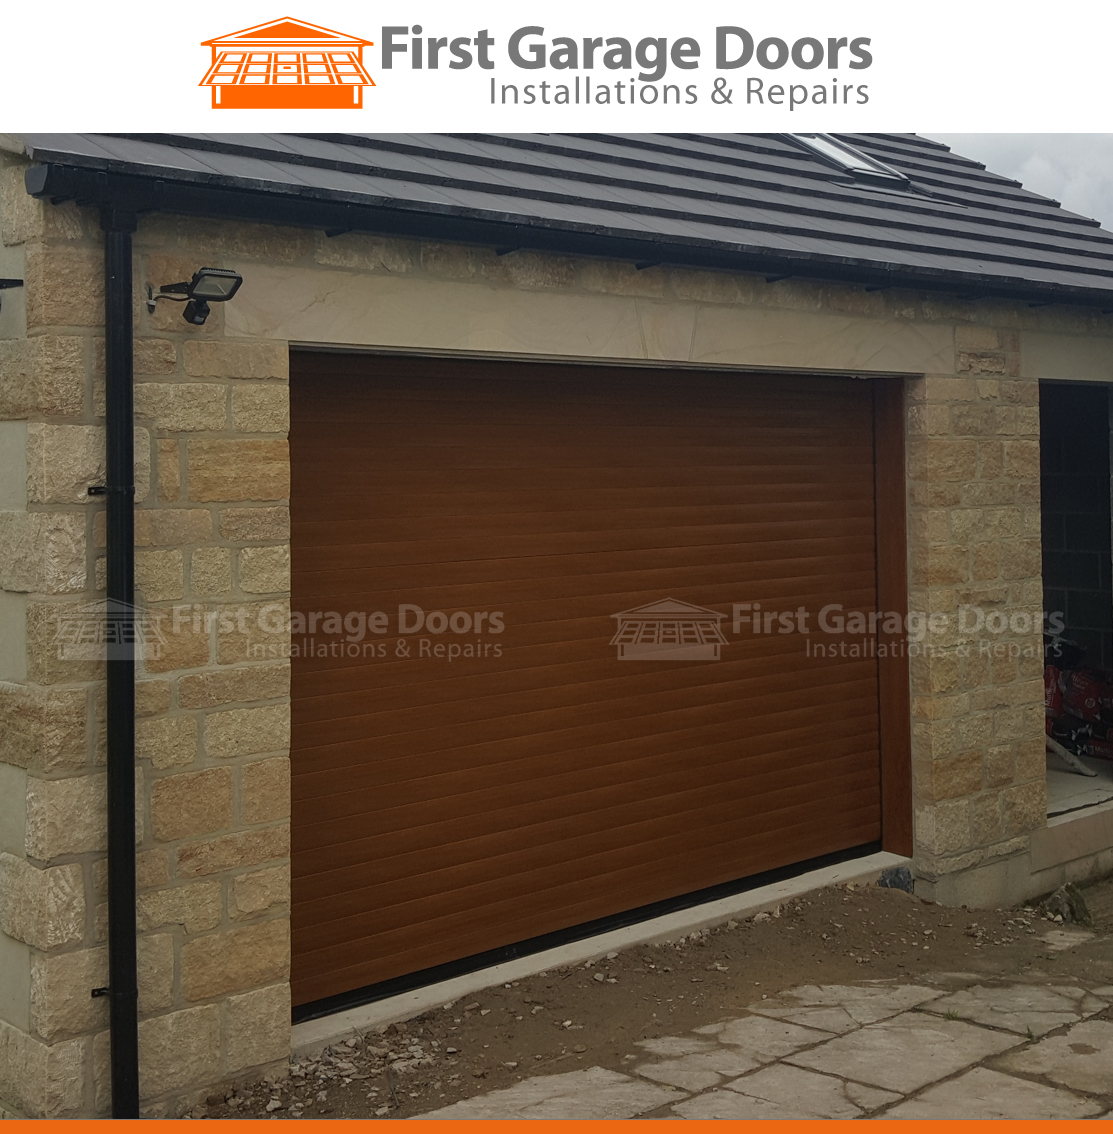 Garage Door Repairs Skipton Call 01756 670029 Now